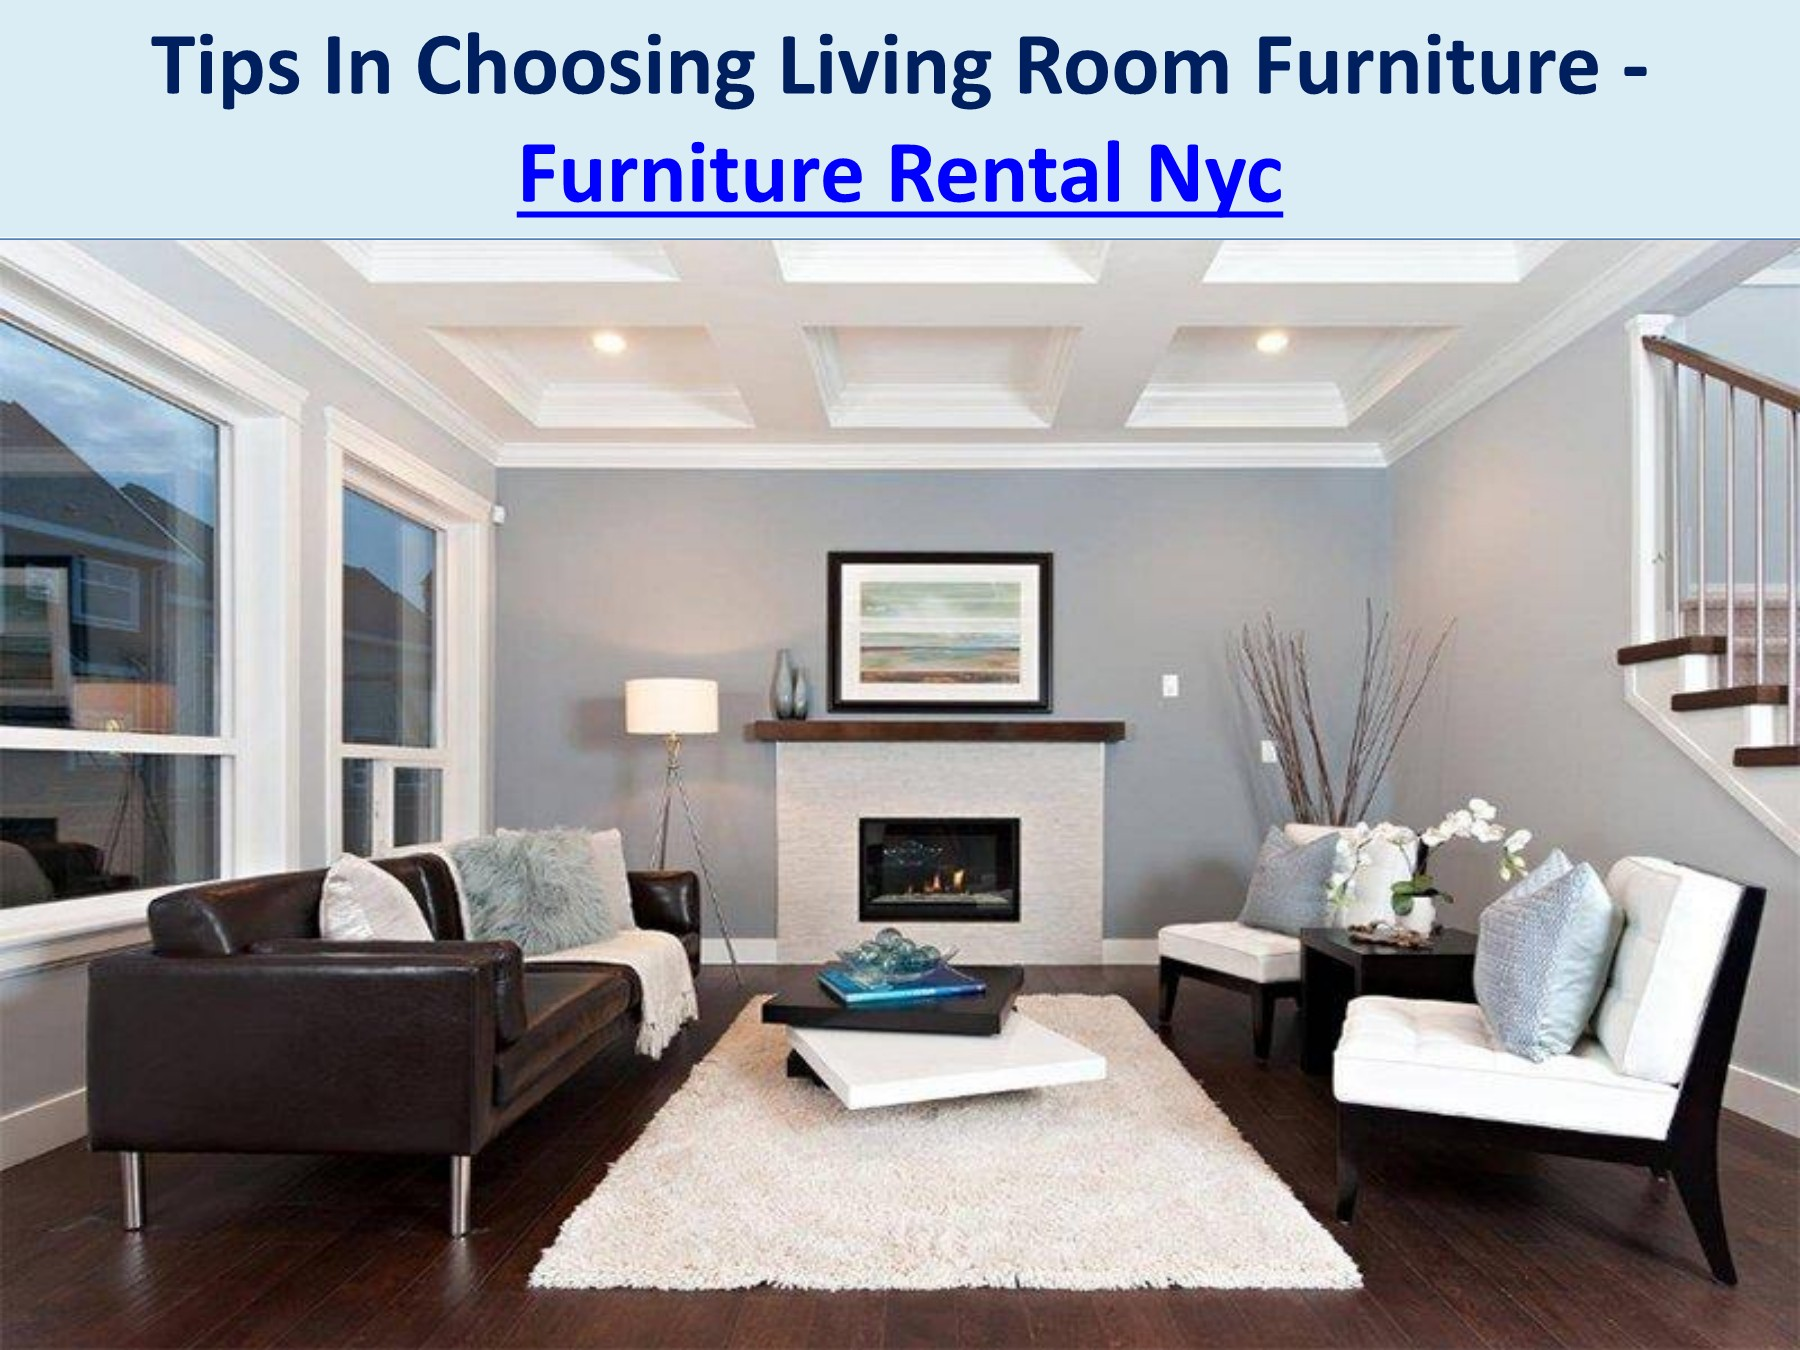 Tips In Choosing Living Room Furniture Furniture Rental Nyc